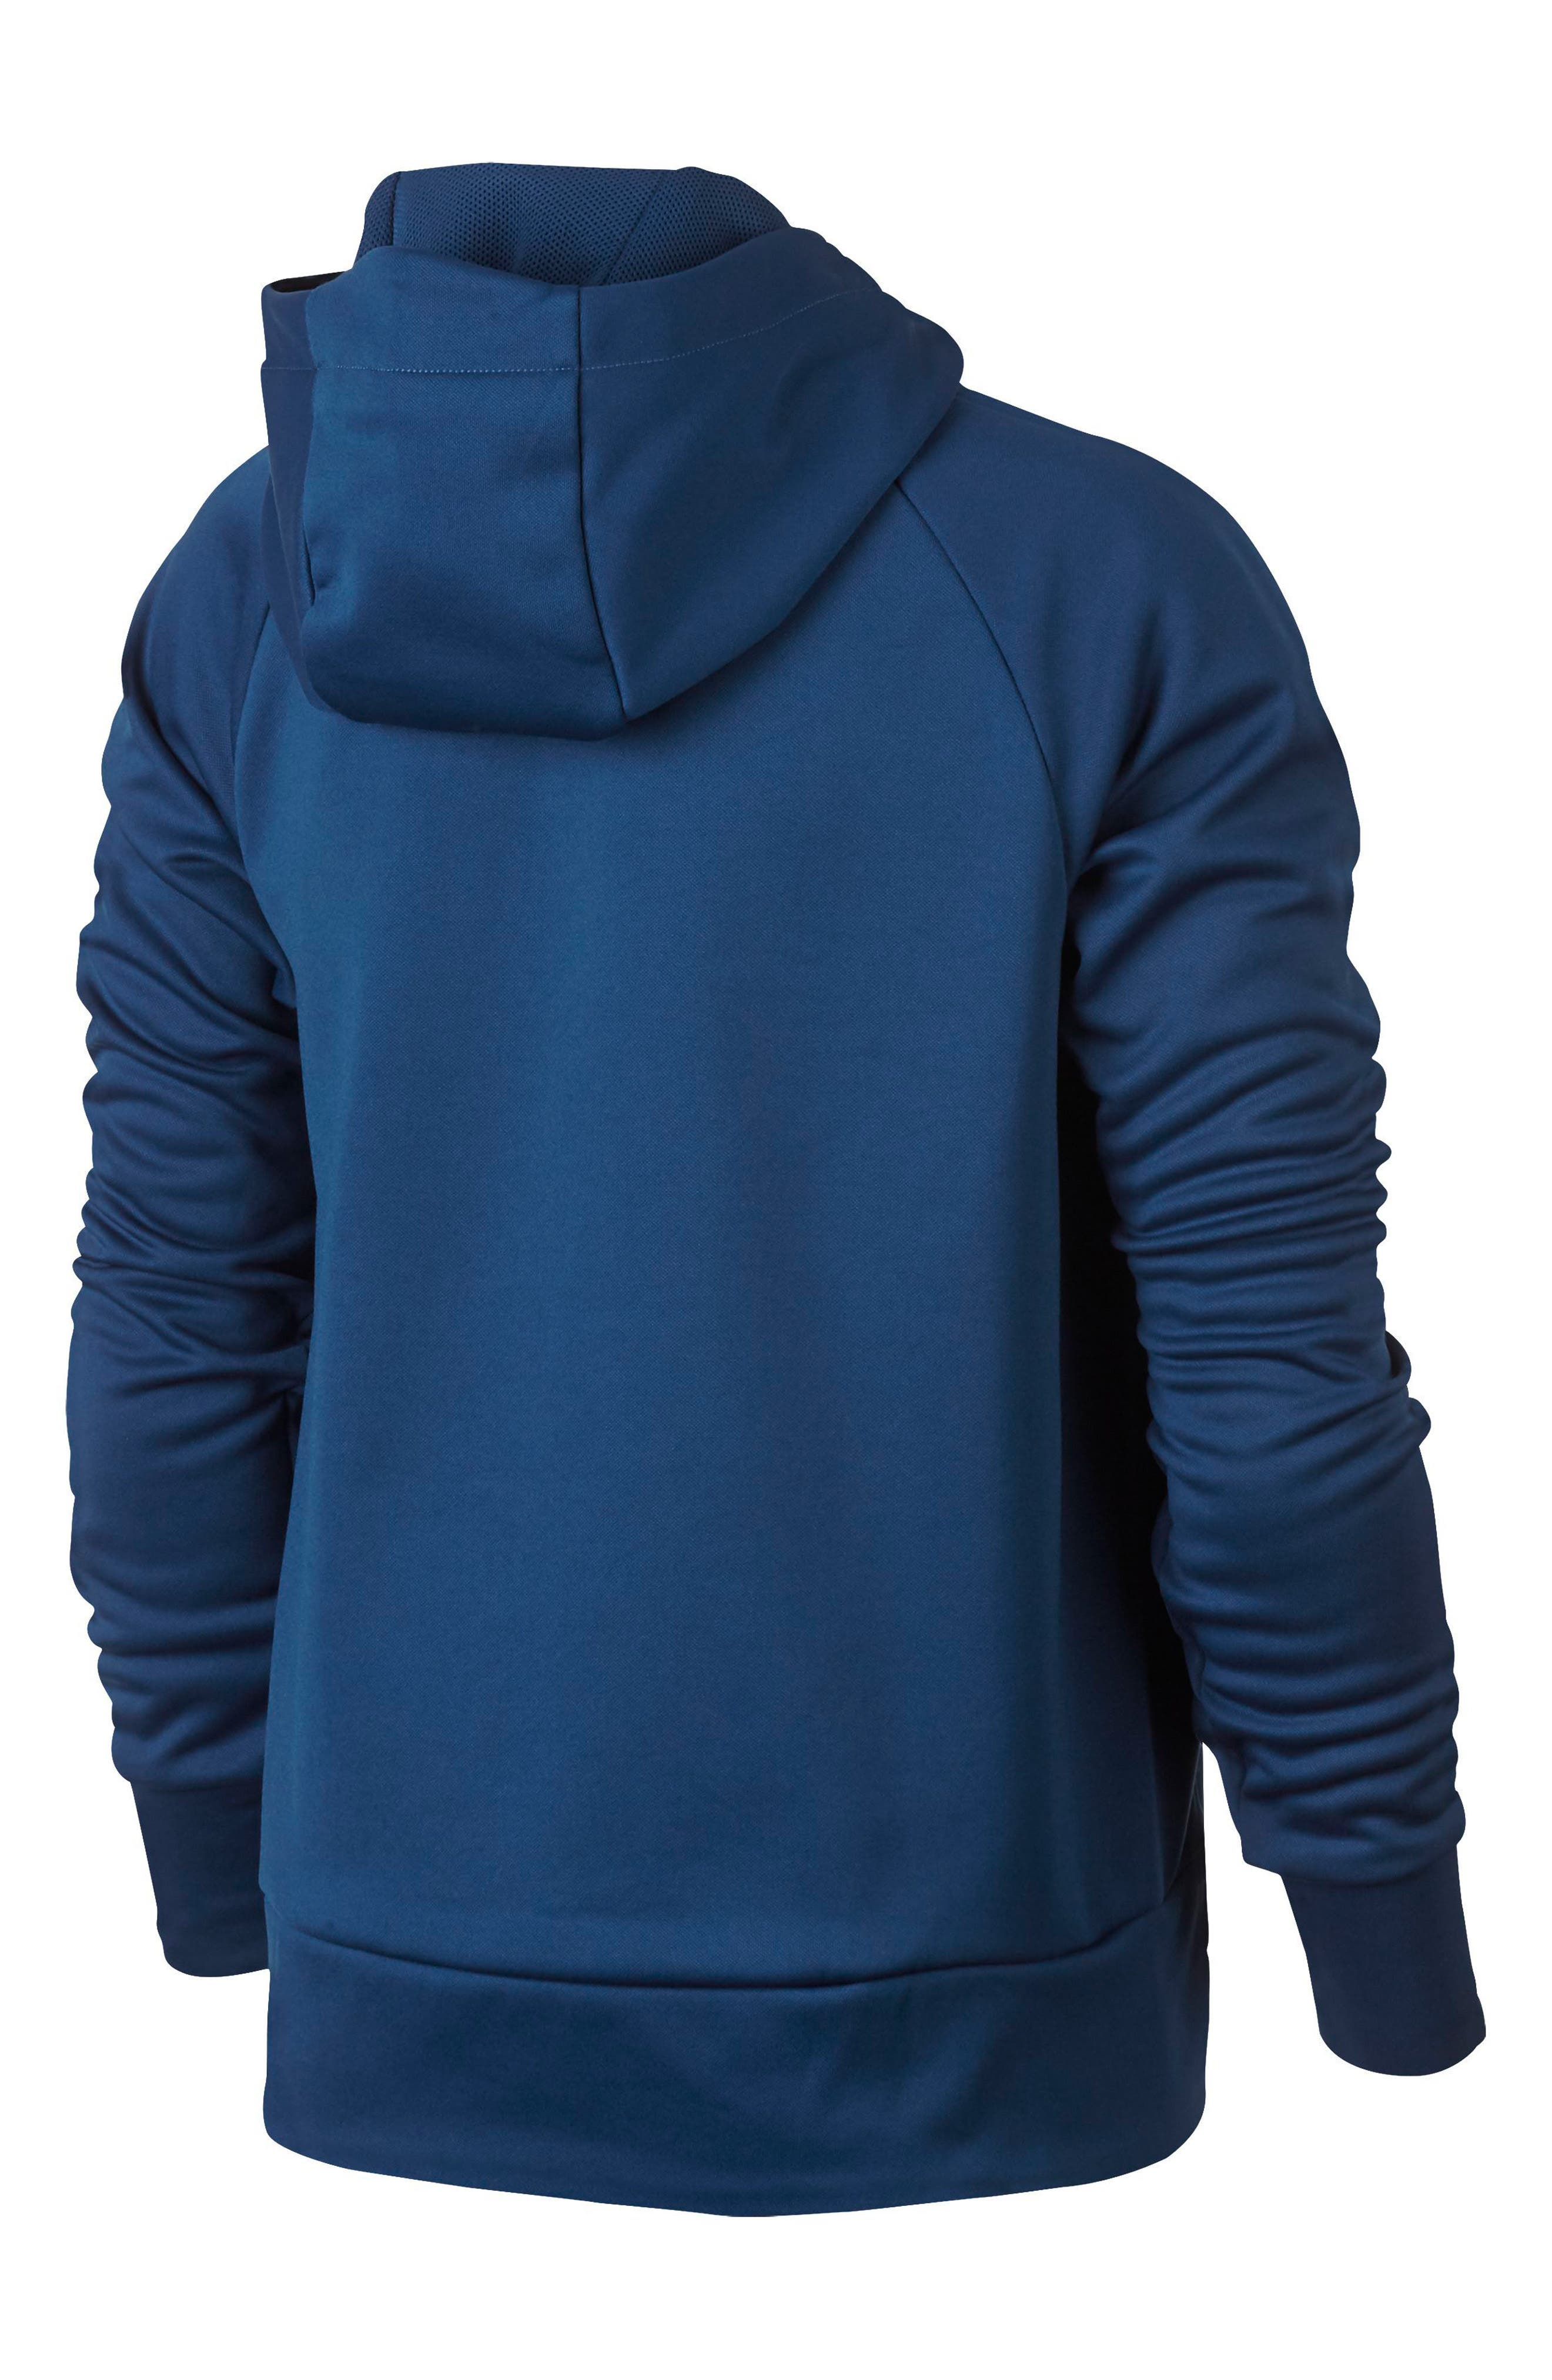 Therma Dry Hoodie,                             Alternate thumbnail 6, color,